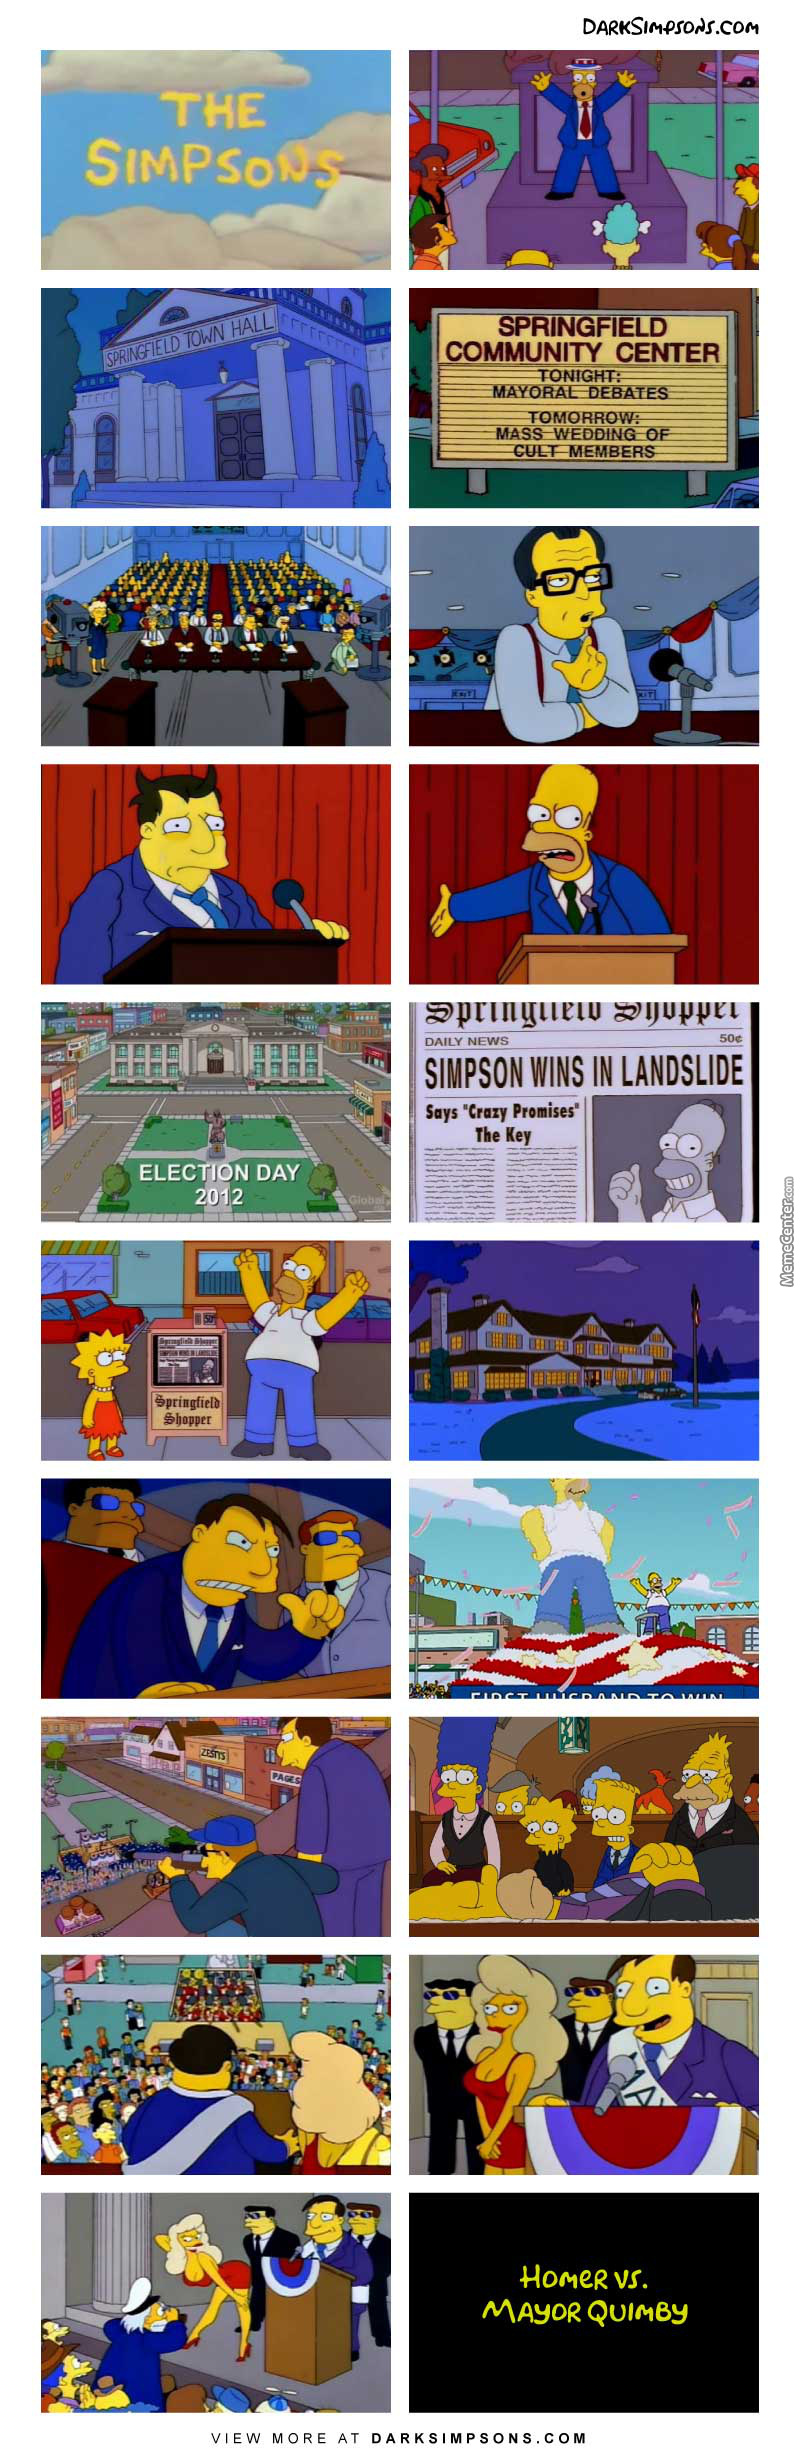 Mayor Quimby: People, Please. We're All Frightened And Horny.